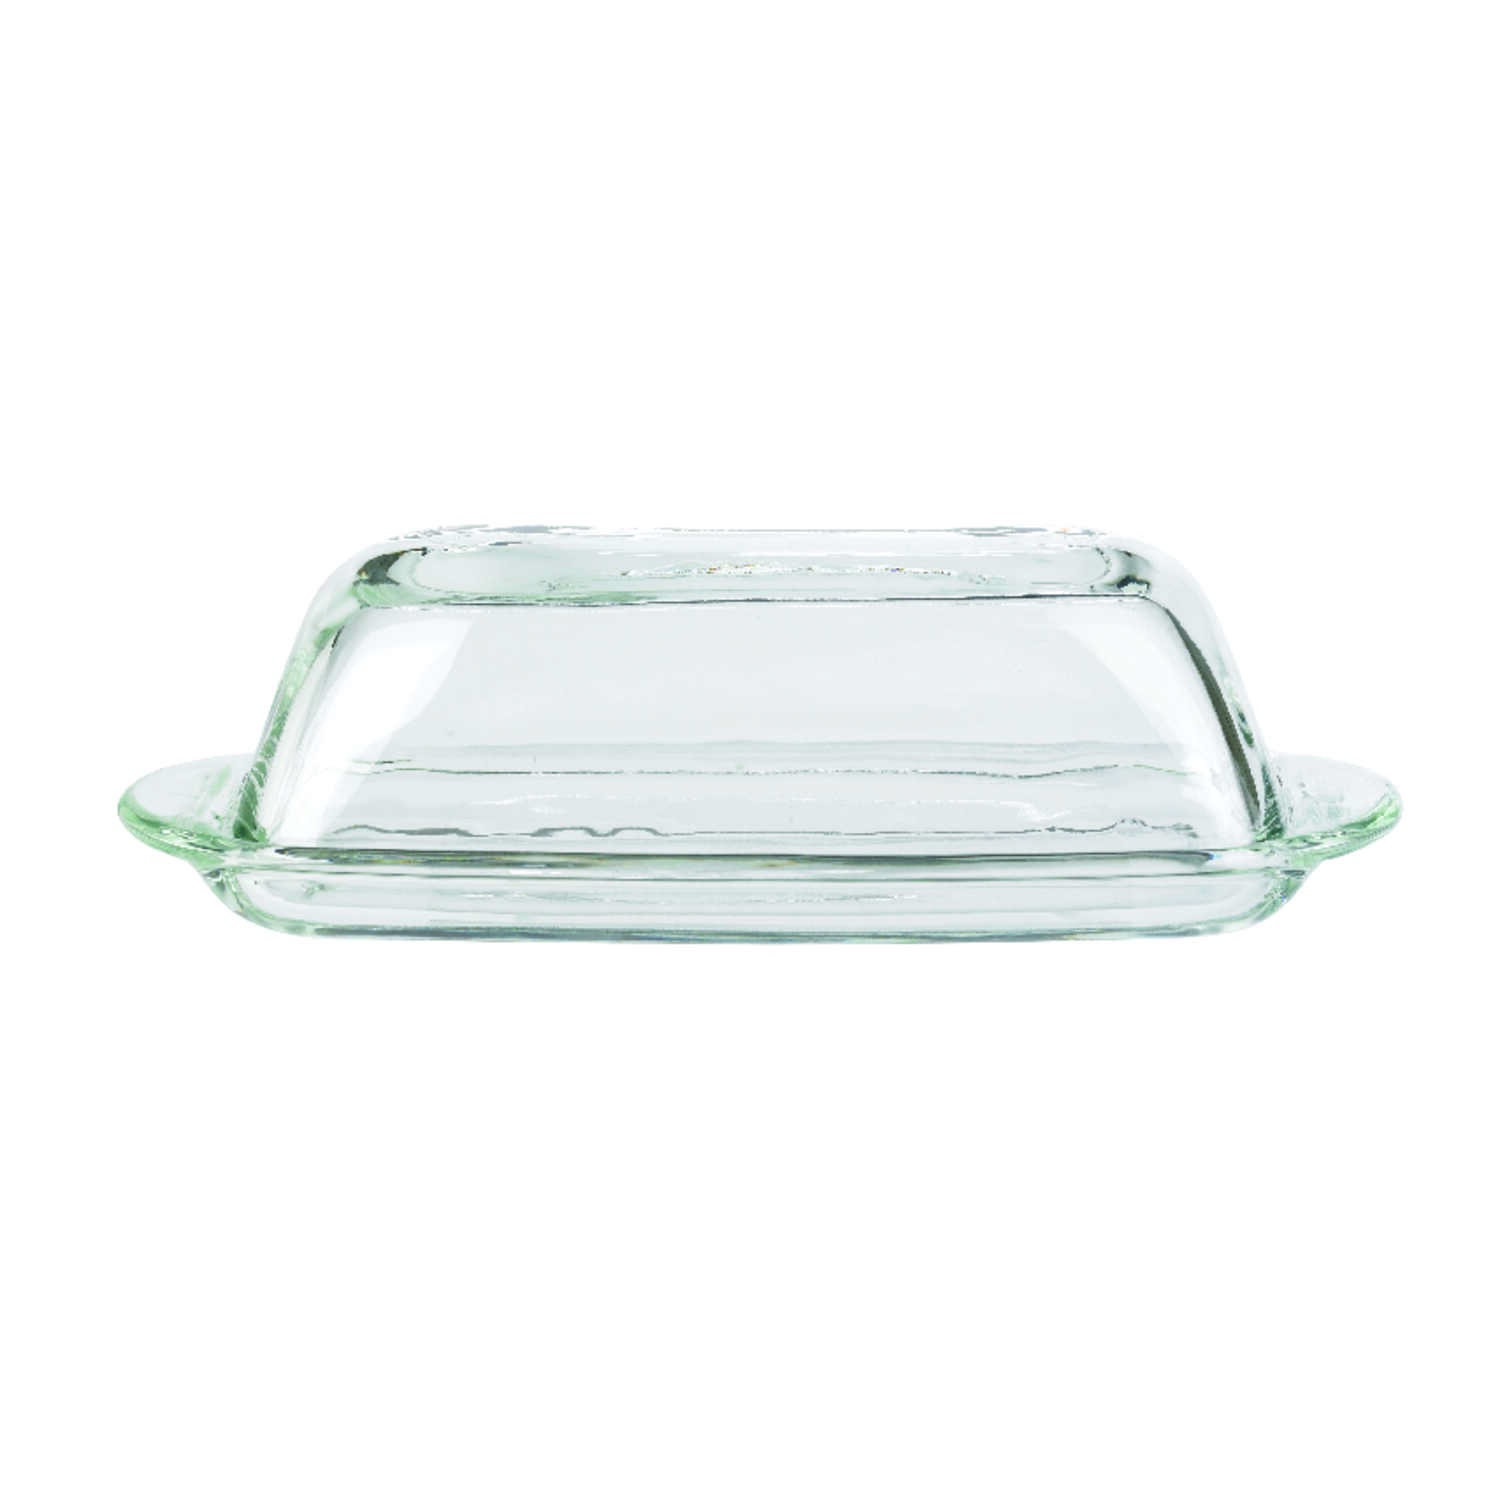 Anchor Hocking  Clear  Glass  Butter Dish  1 pk